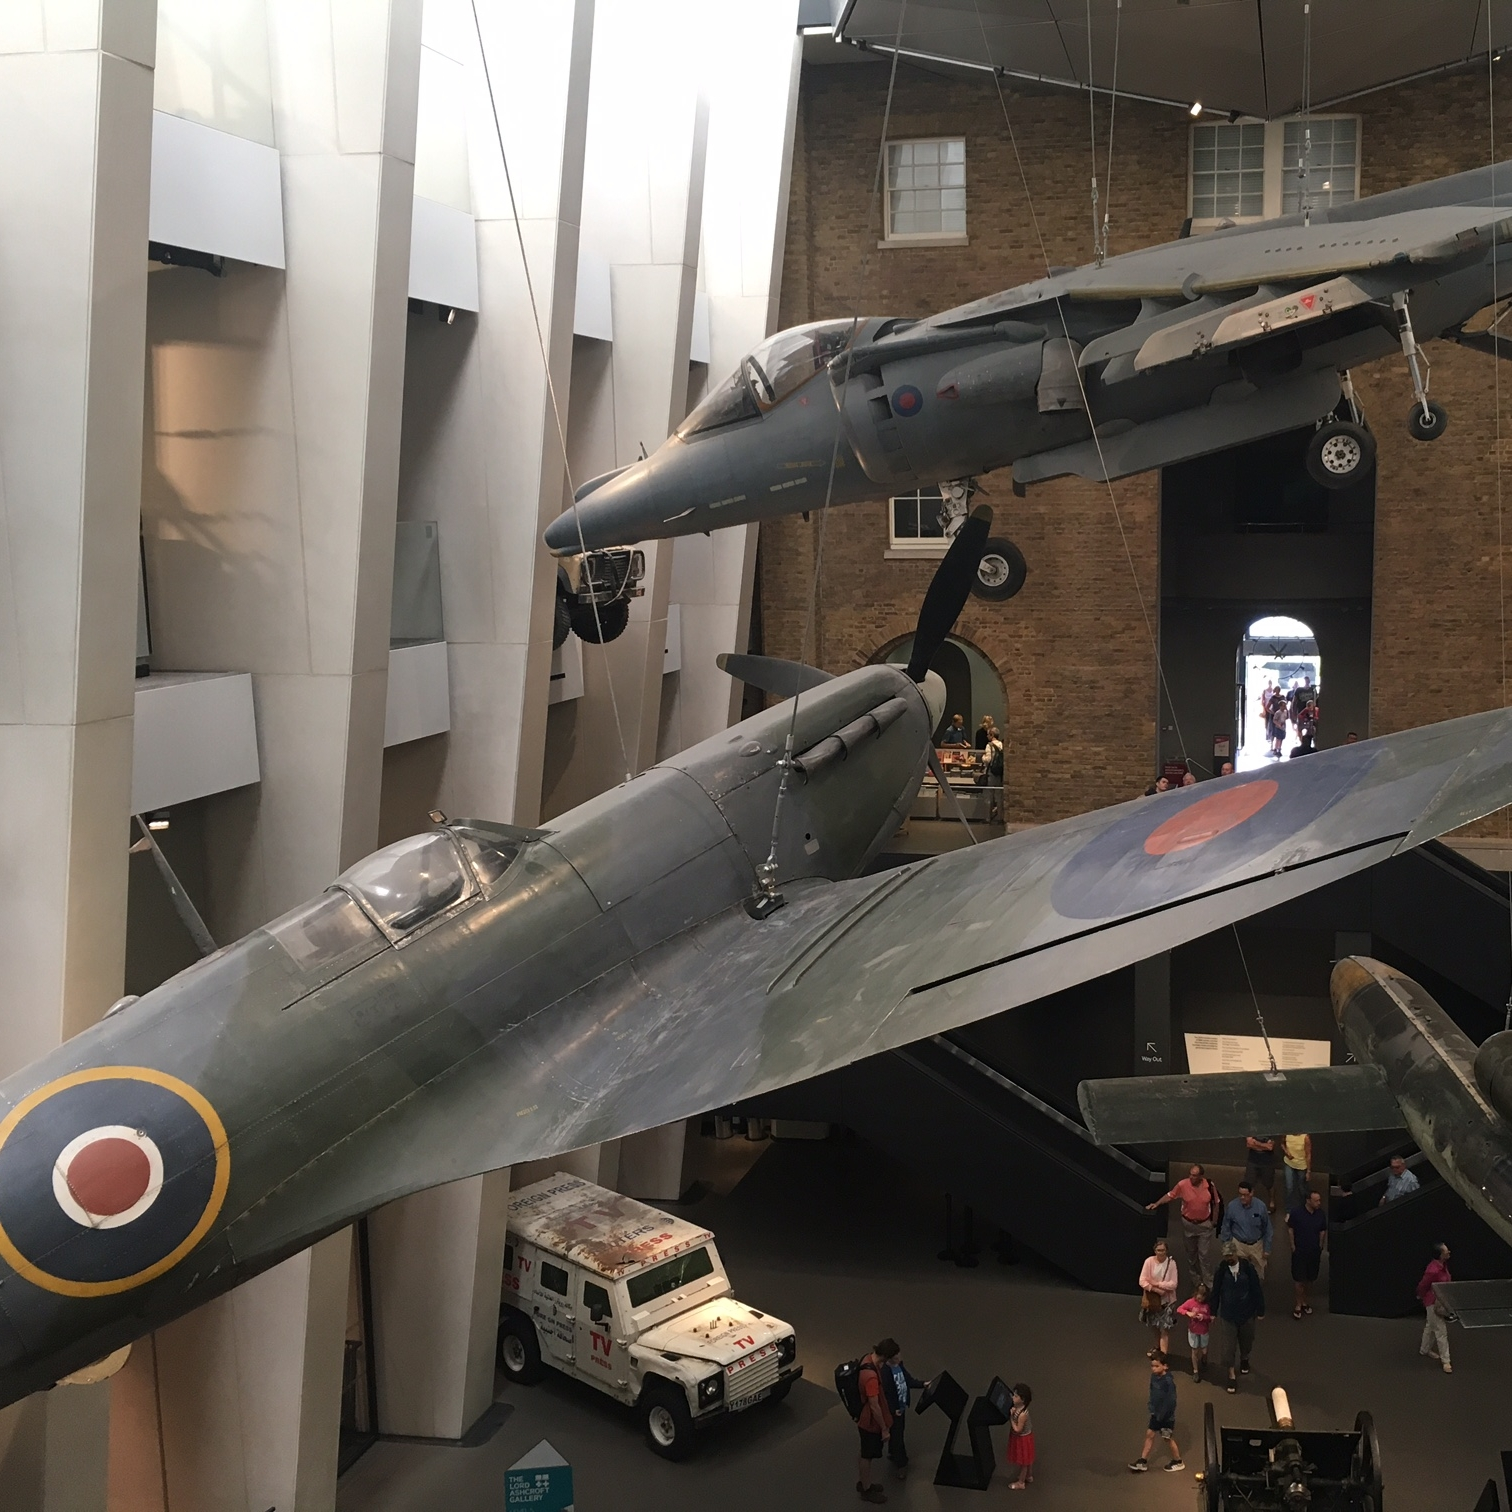 Imperial War Museum, London by The Doubtful Traveller